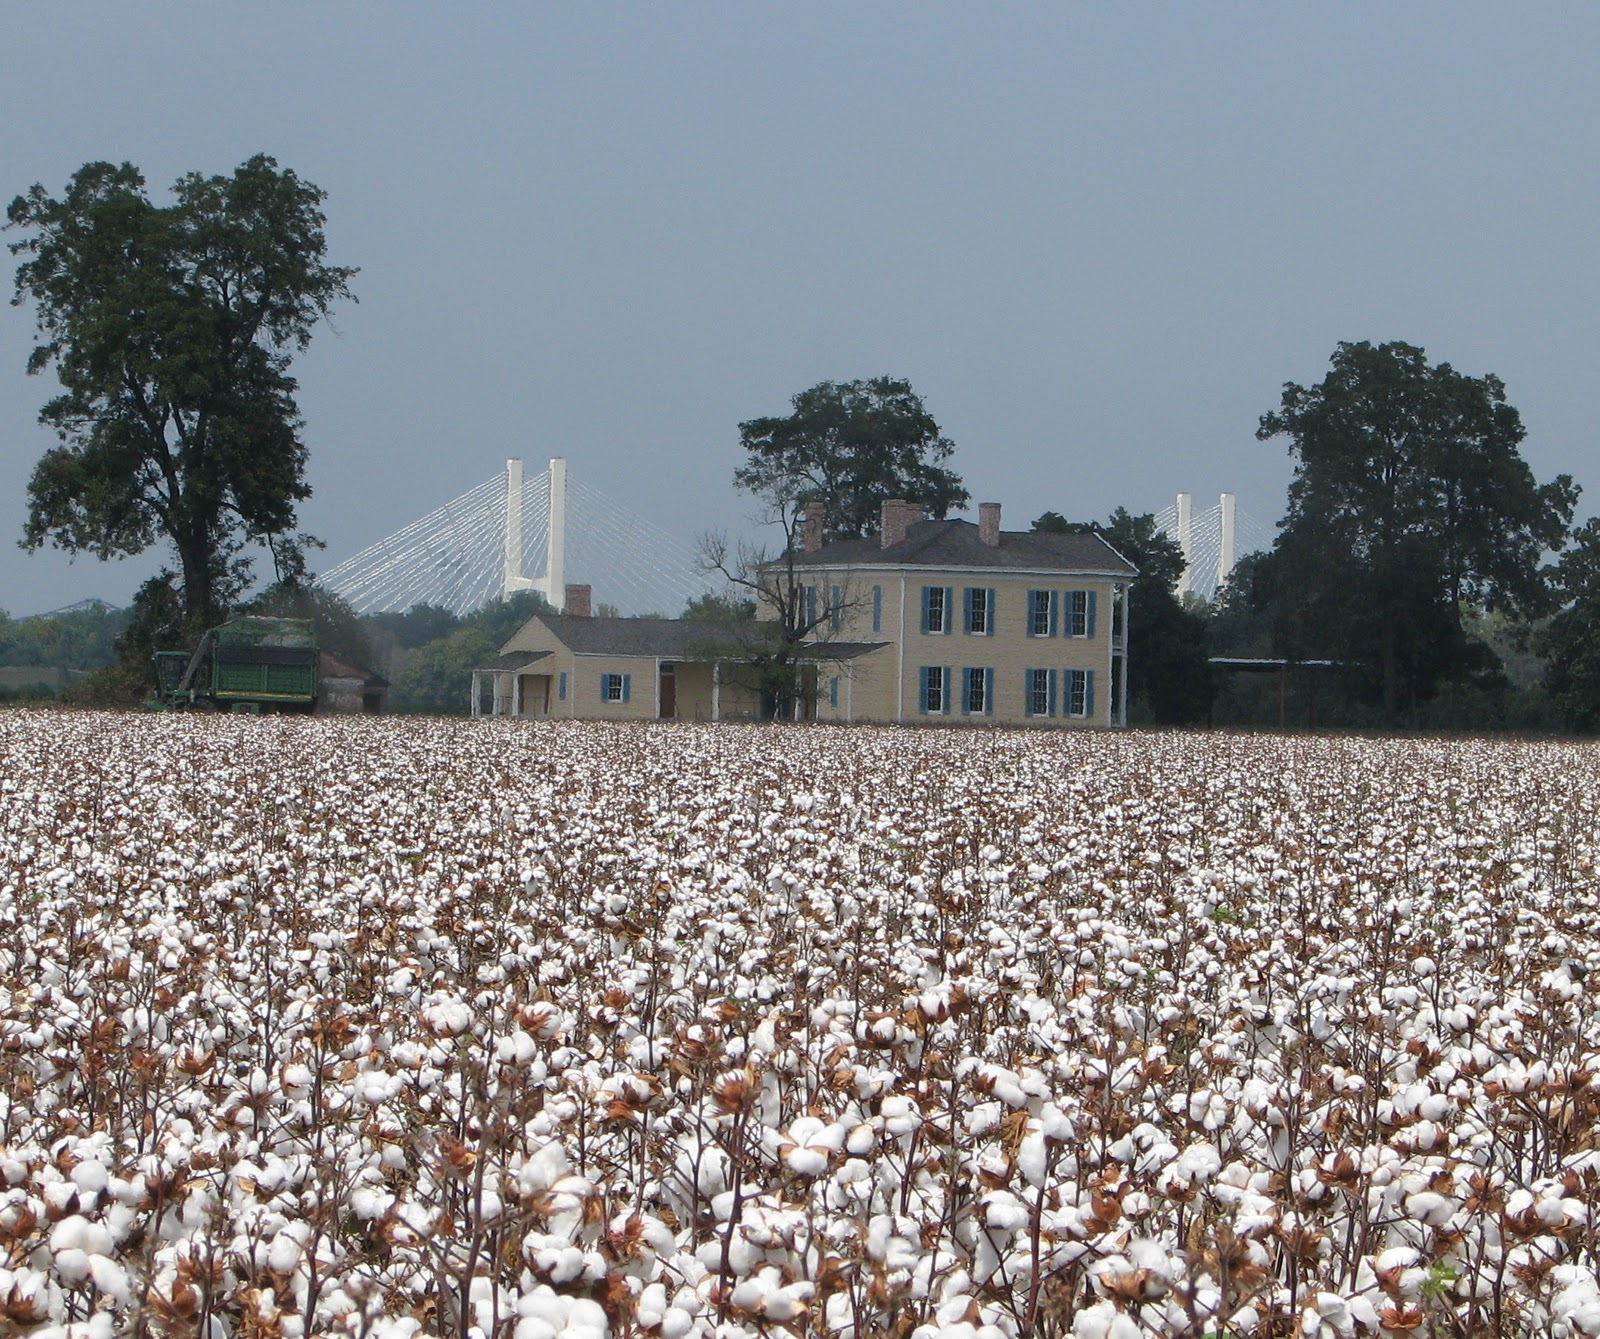 cotton plantations in the south 1800s cotton plantations ... Cotton Plantations 1800s